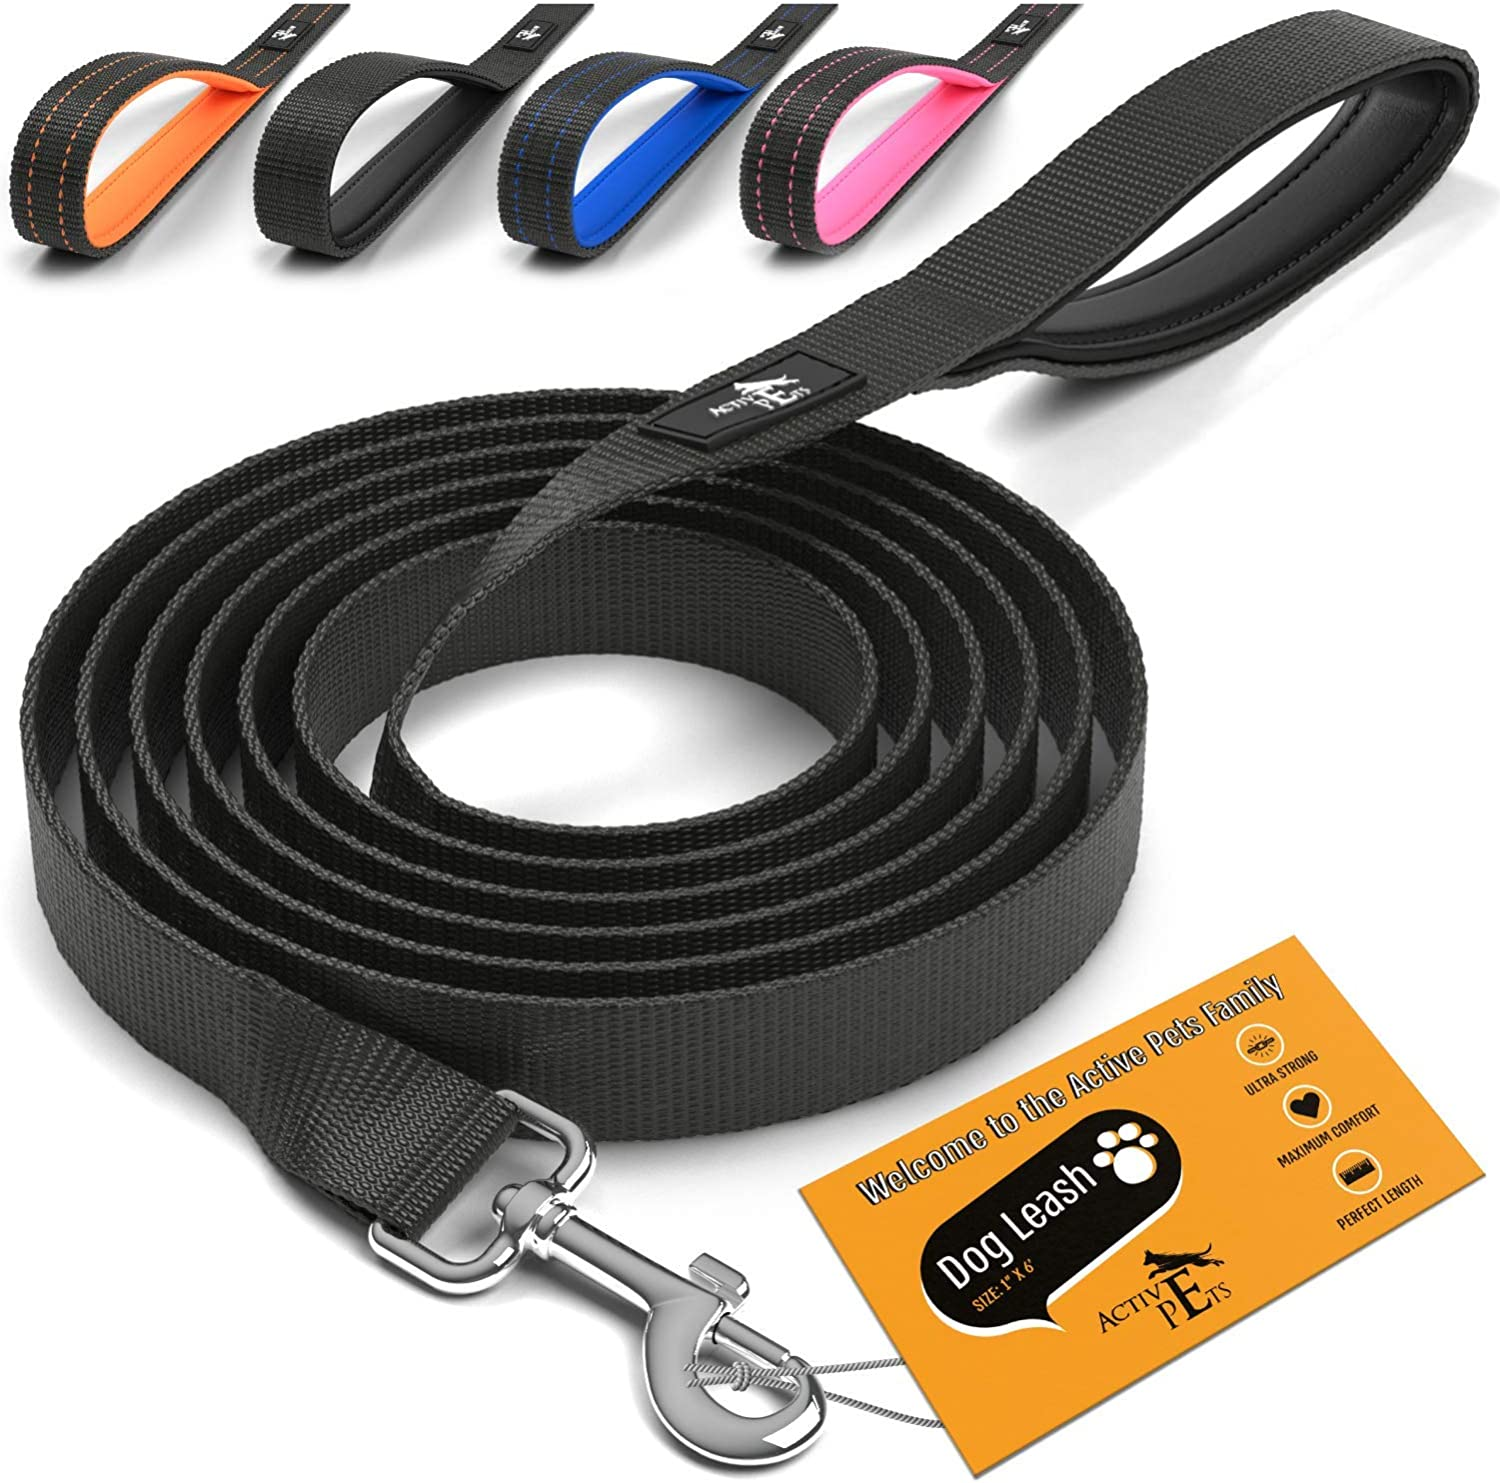 Active Pets Strong Dog Leash with Handle 4 Quantity limited Padded from New products, world's highest quality popular! Sizes Pu